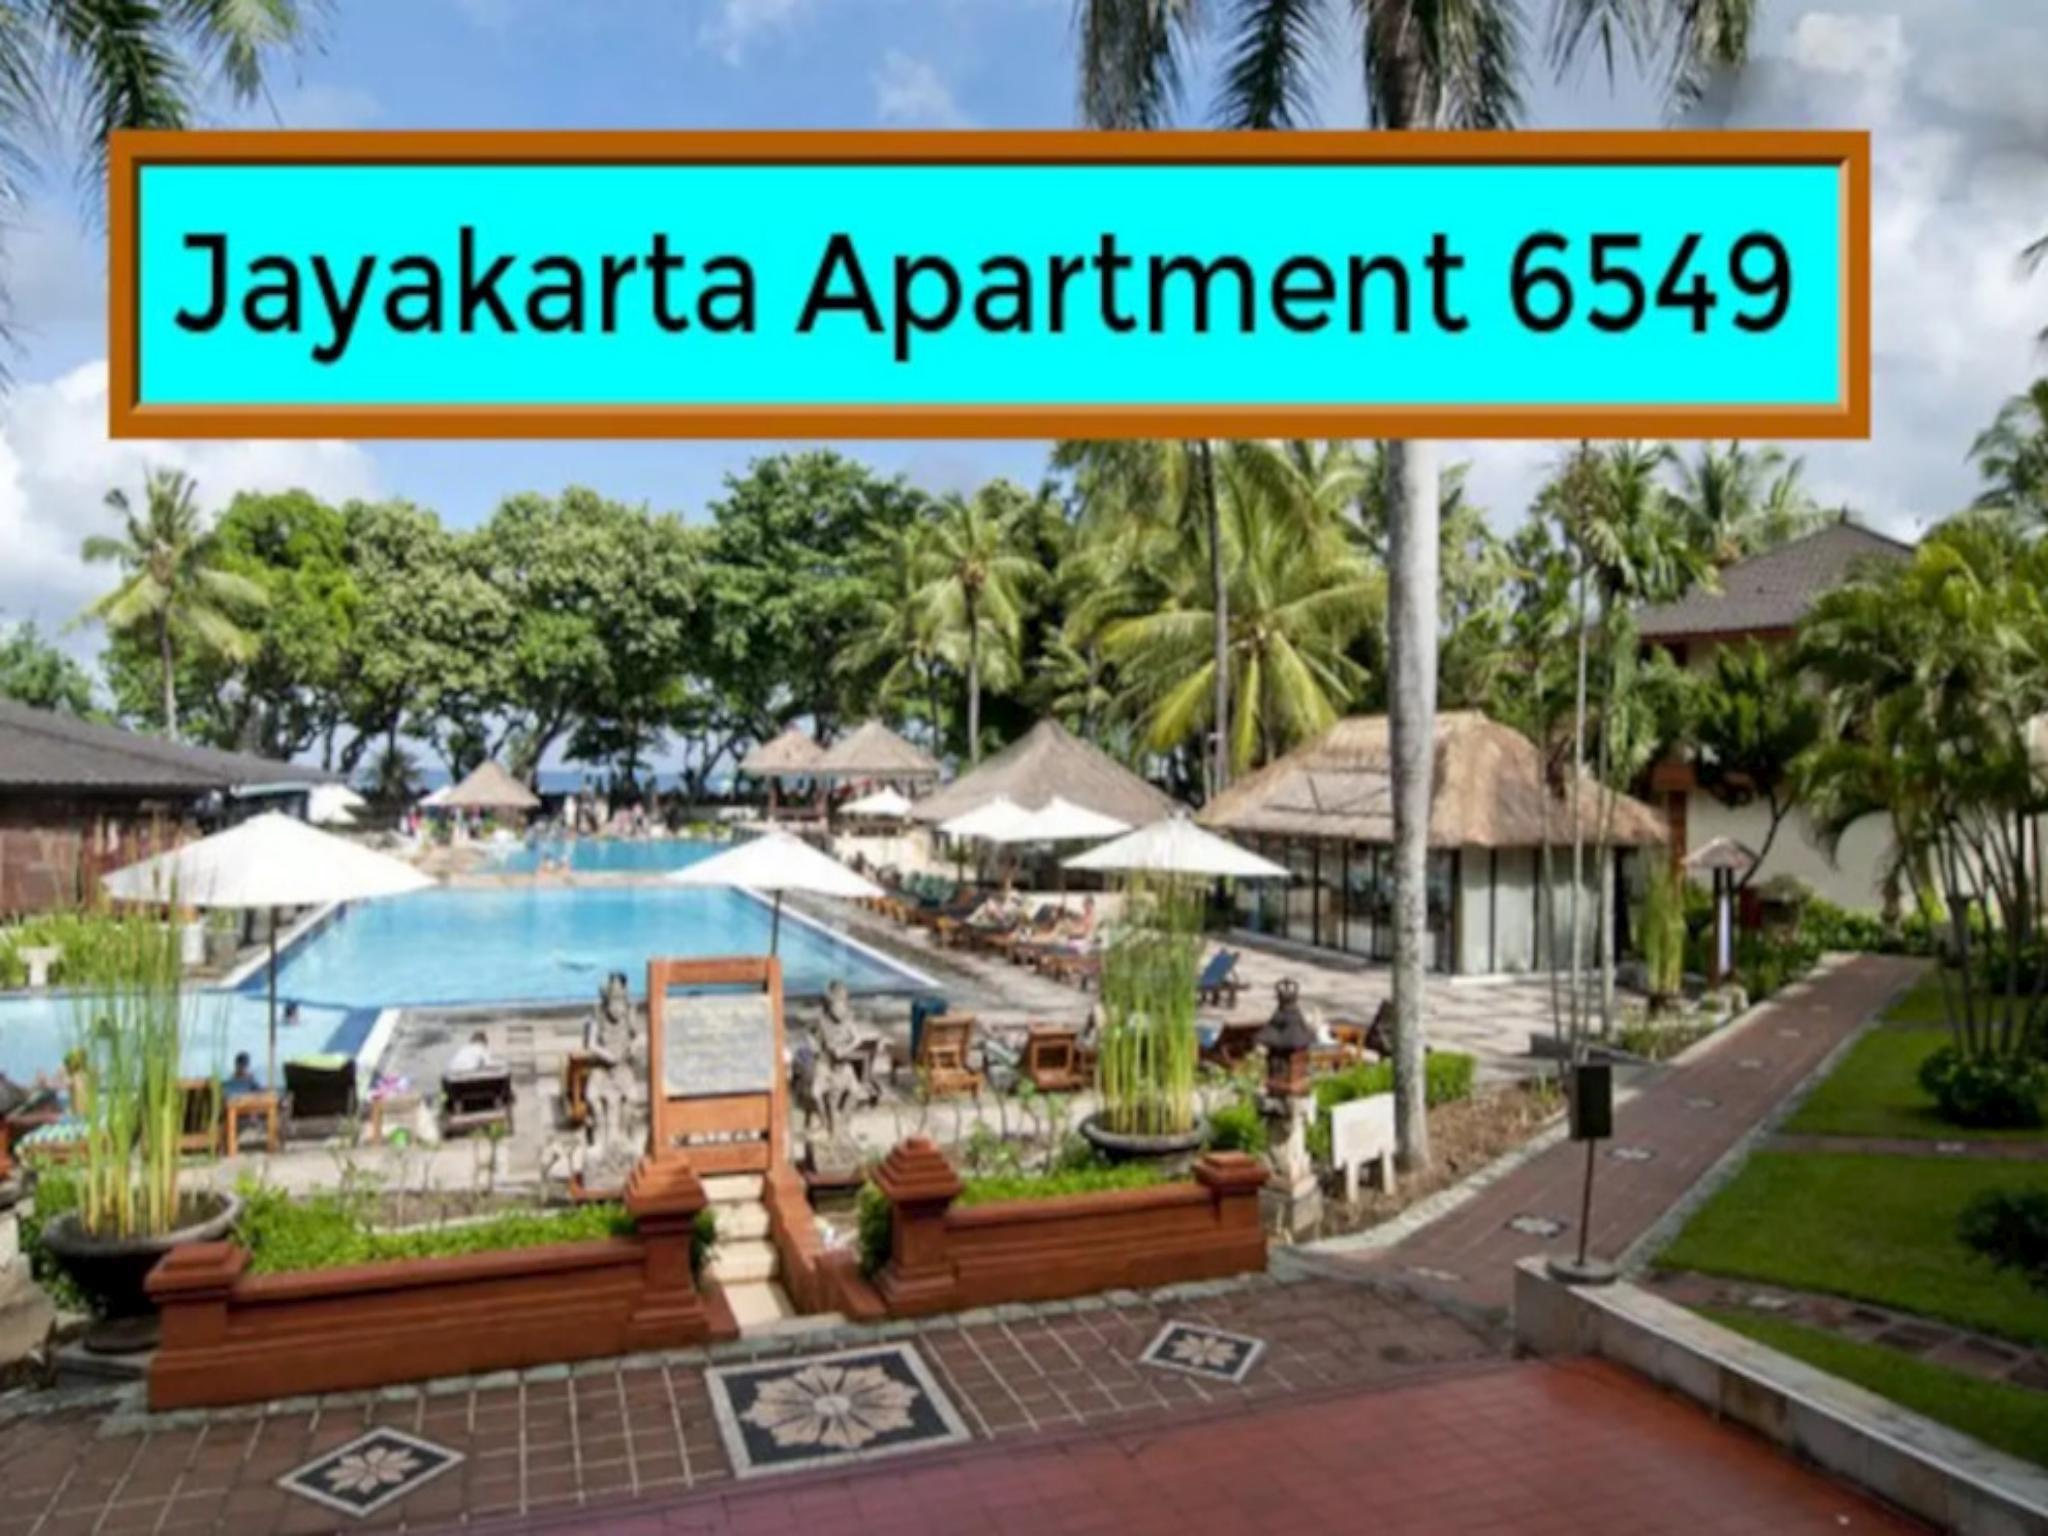 Jayakarta Apartment 6549